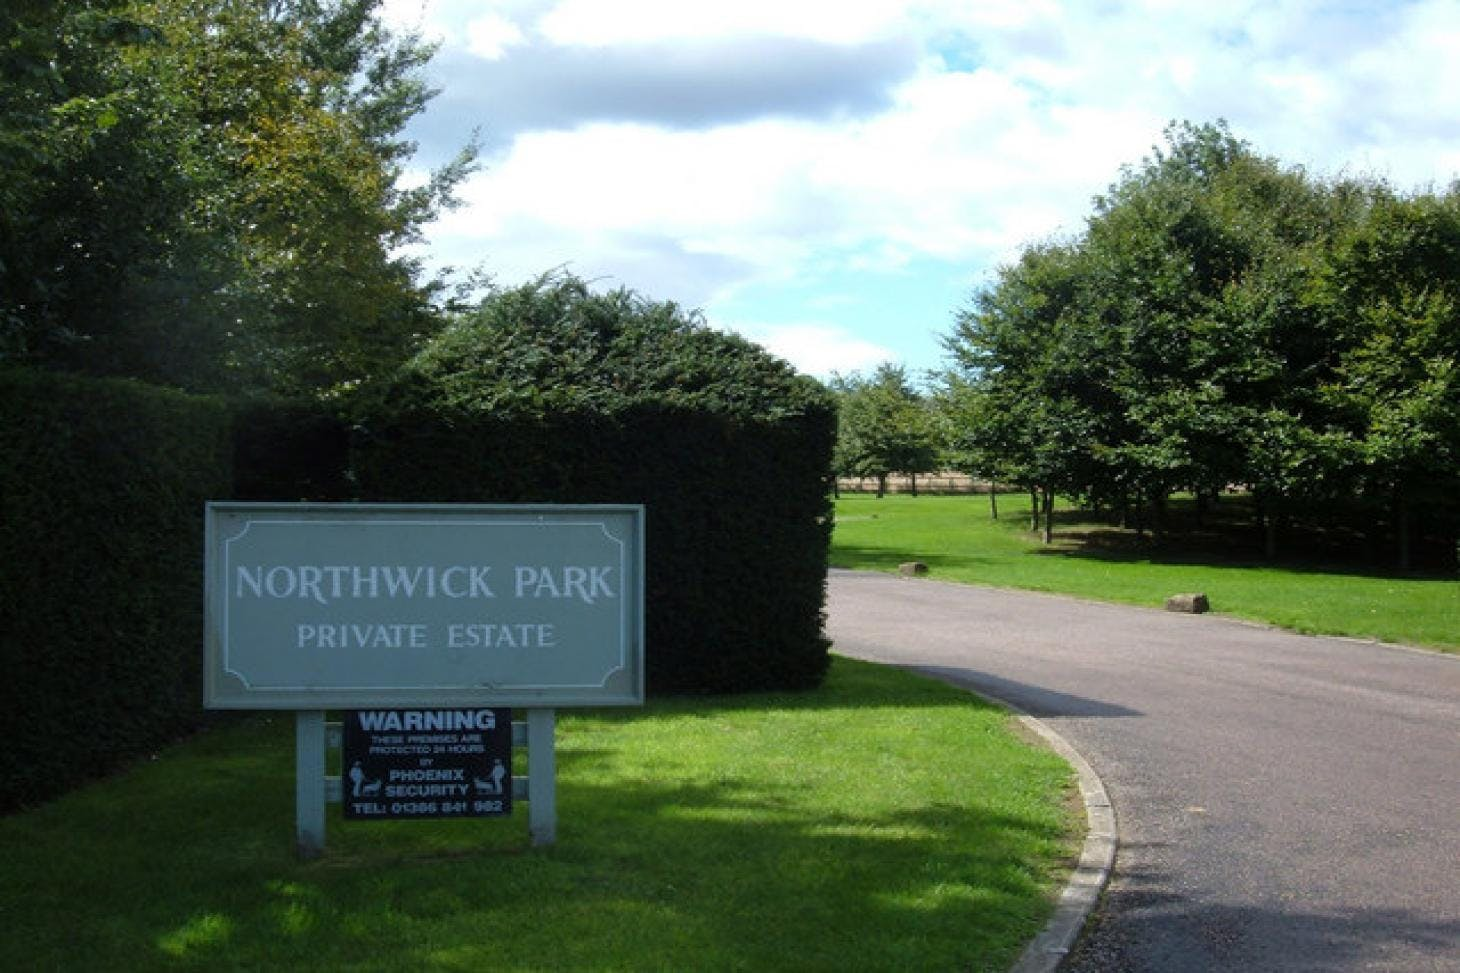 Northwick Park Union rugby pitch